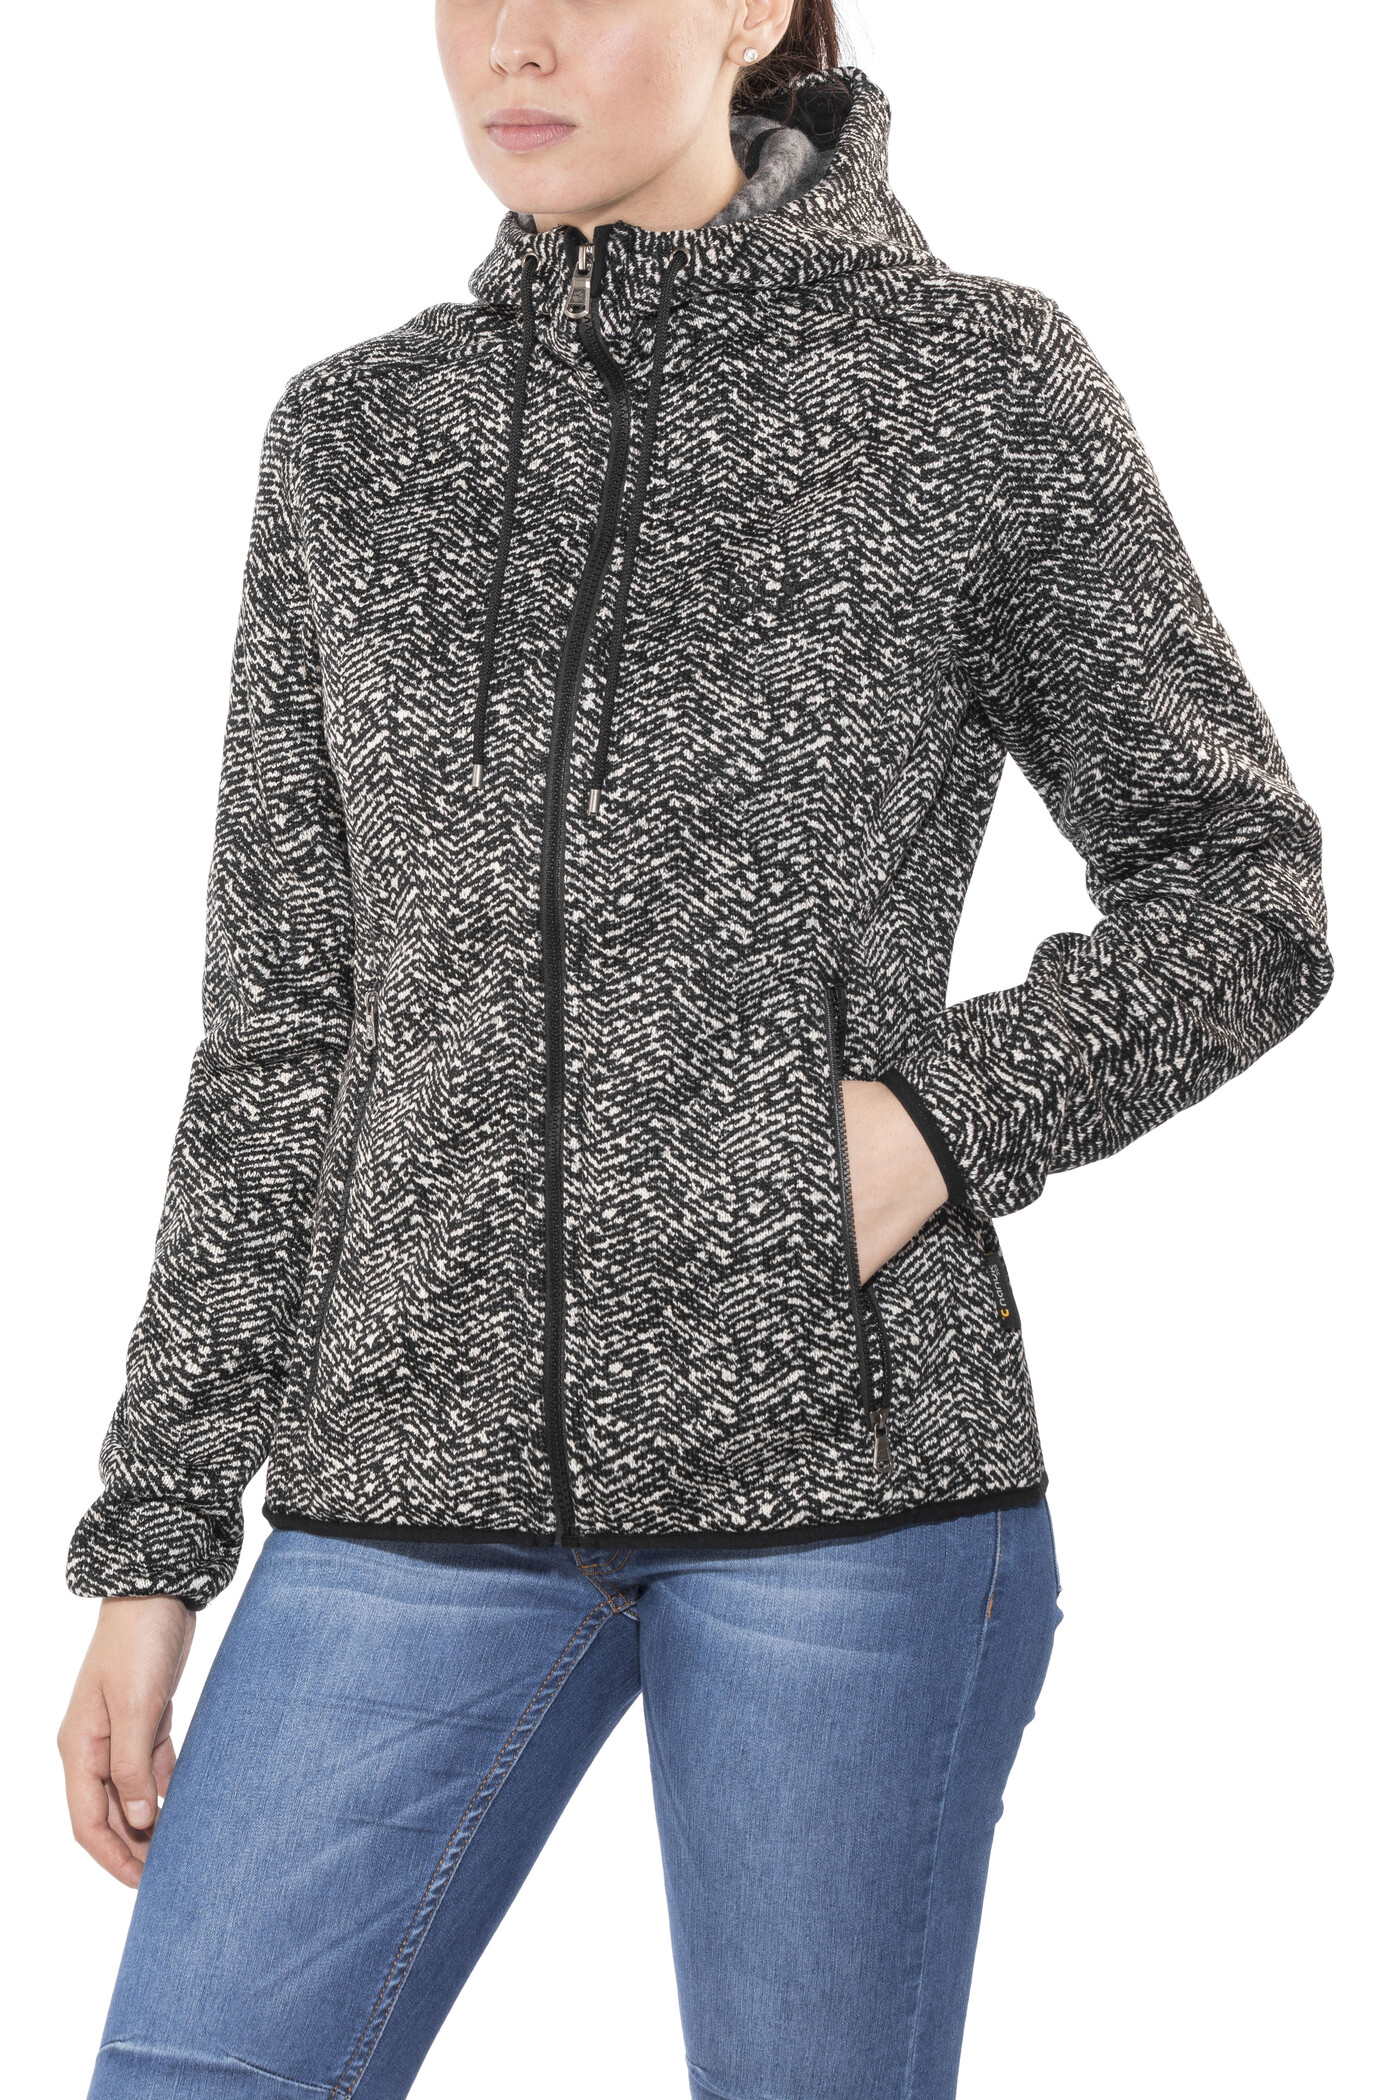 Jack Wolfskin Belleville Jacke Damen black all over